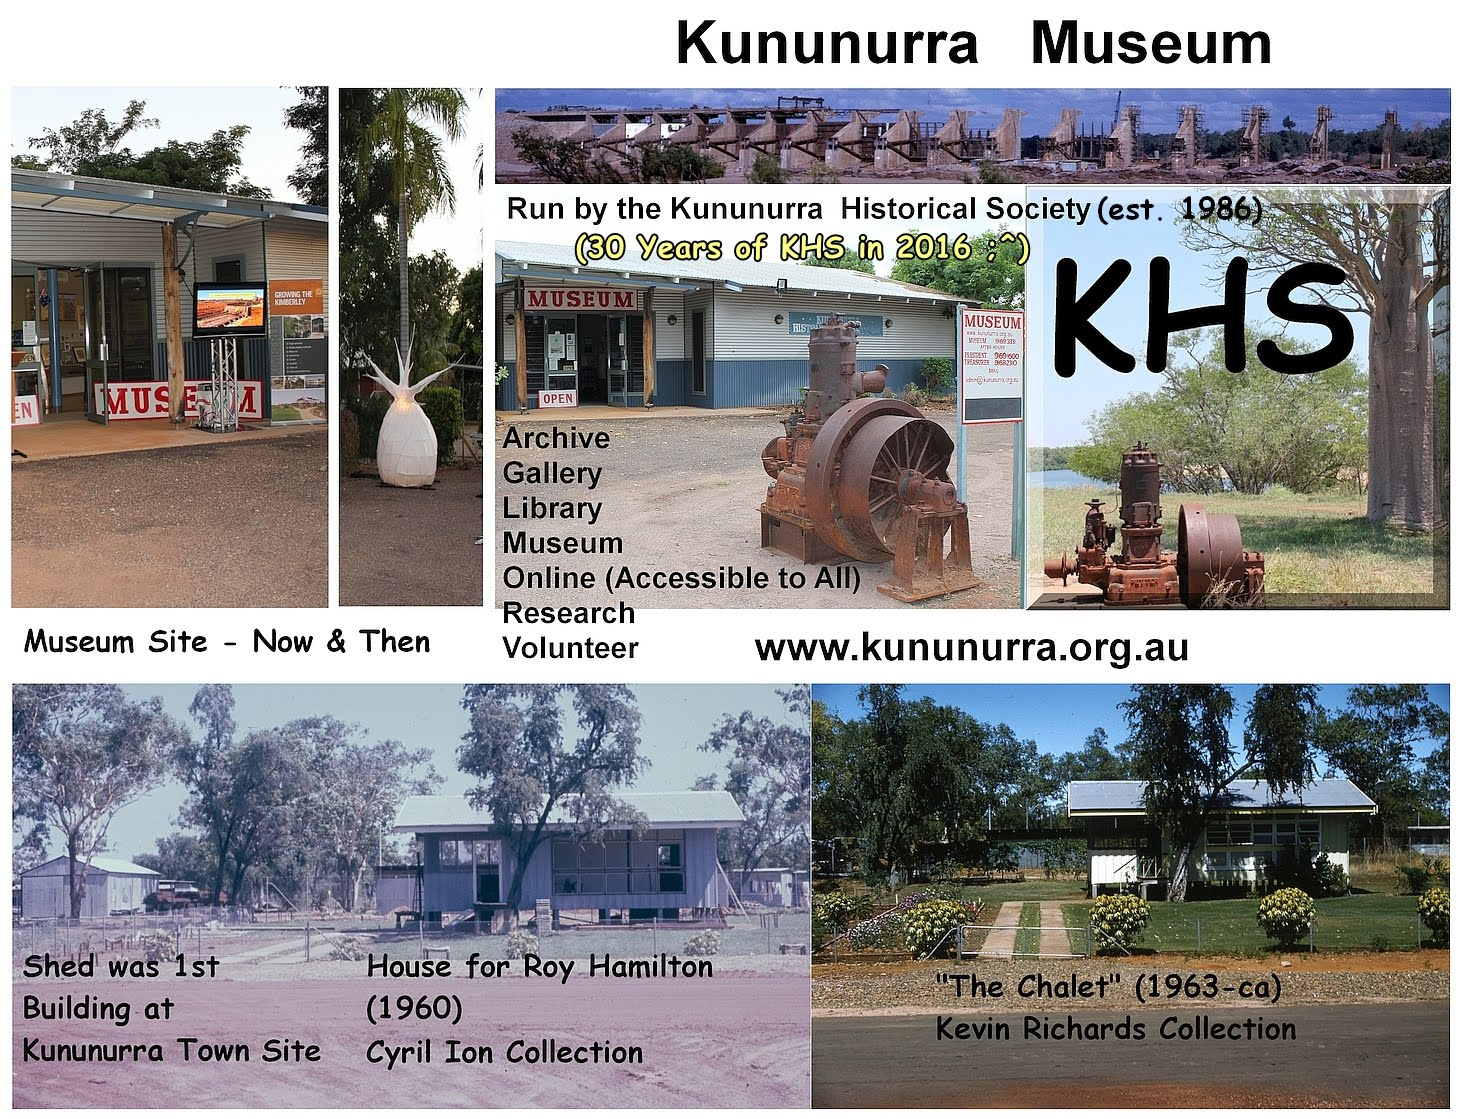 2016-06-05 - 30 Years of KHS - Kununurra Museum site Now (2010s) and Then (1960s) Composite photo montage by AB for KHS